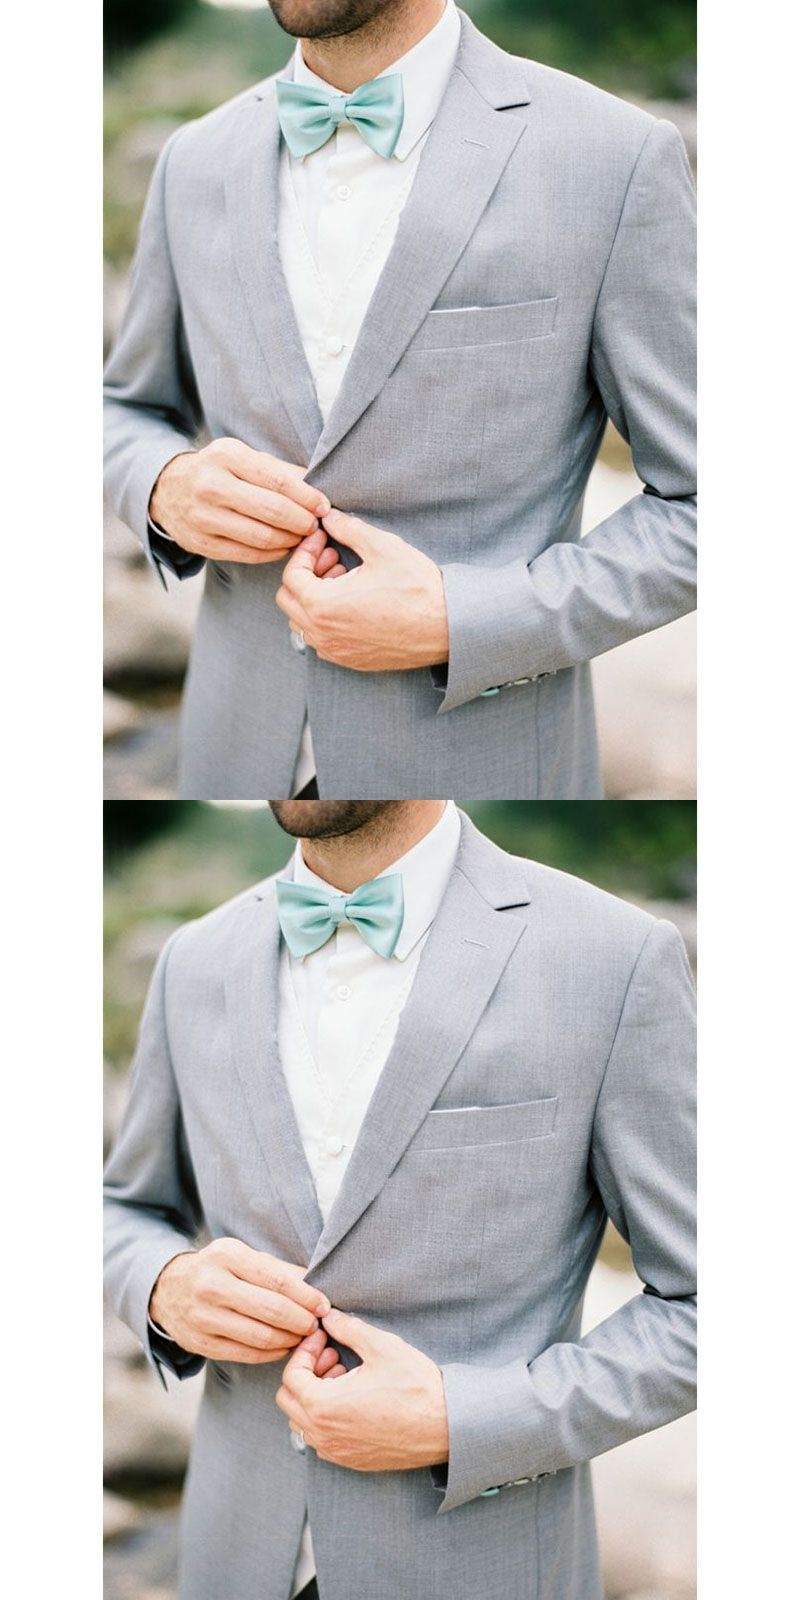 Wedding Suits For Men Light Gray Custom Made Bespoke Ash Grey Suits For Men  2 Button a15f68d52ab9